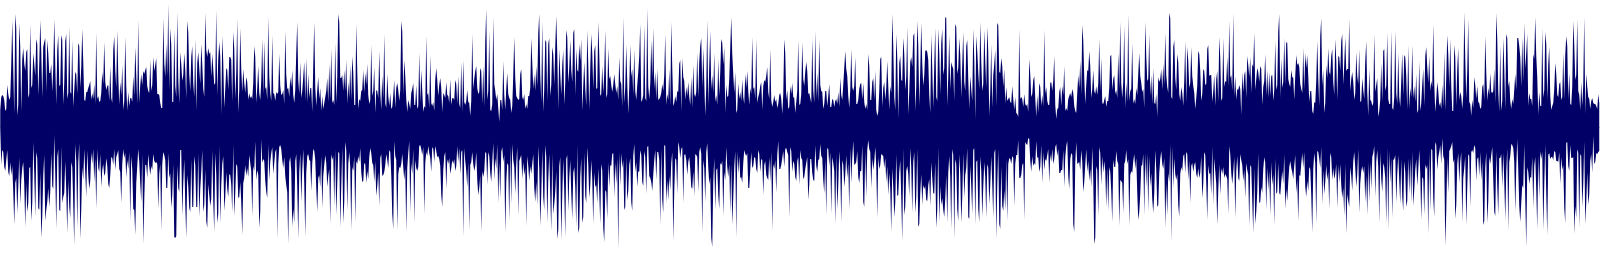 waveform of track #105848